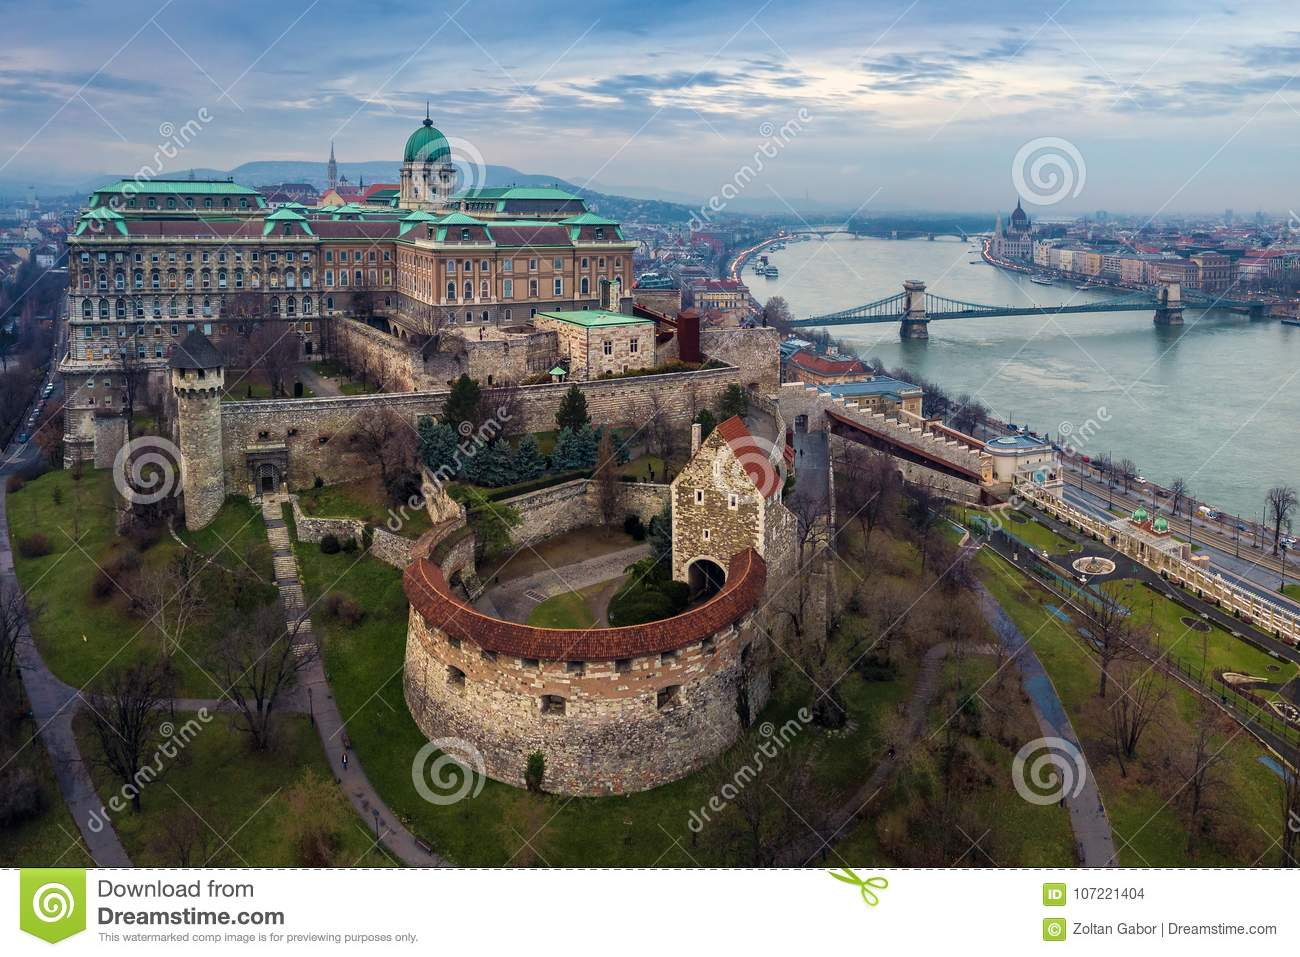 Budapest, Hungary - Aerial drone skyline view of Buda Castle Royal Palace with Szechenyi Chain Bridge